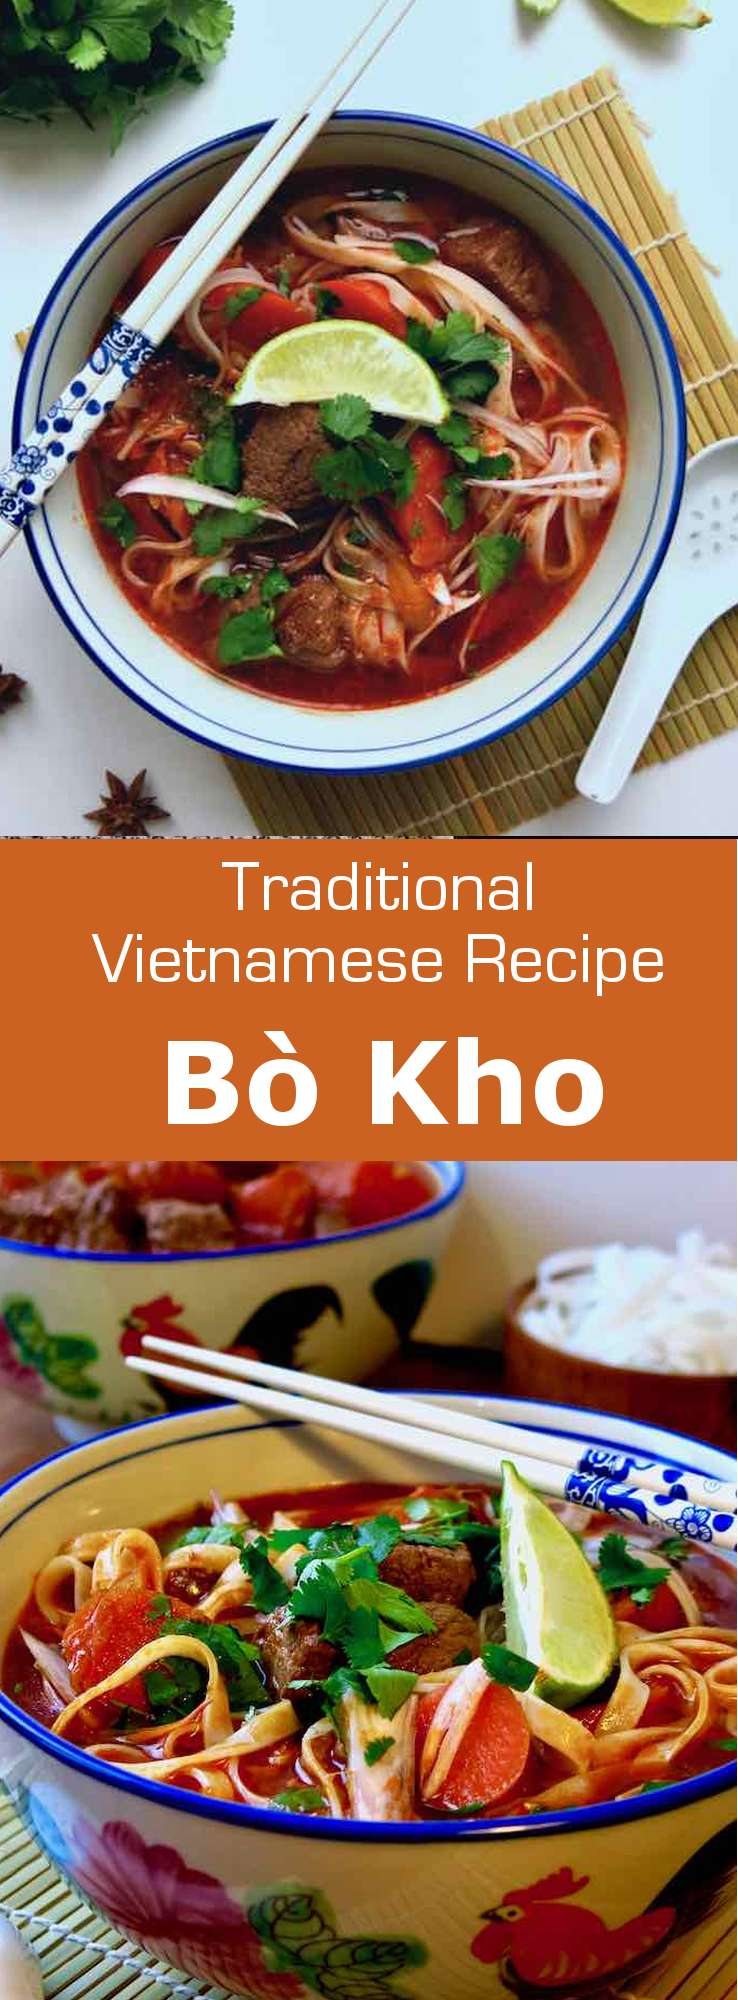 Bò kho is a delicious spicy beef stew dish, that is popular in Vietnam. It is served with rice noodles, but can also be served with baguette, or as is. #Vietnam #VietnameseCuisine #VietnameseFood #VietnameseRecipe #AsianCuisine #AsianRecipe #AsianFood #WorldCuisine #196flavors